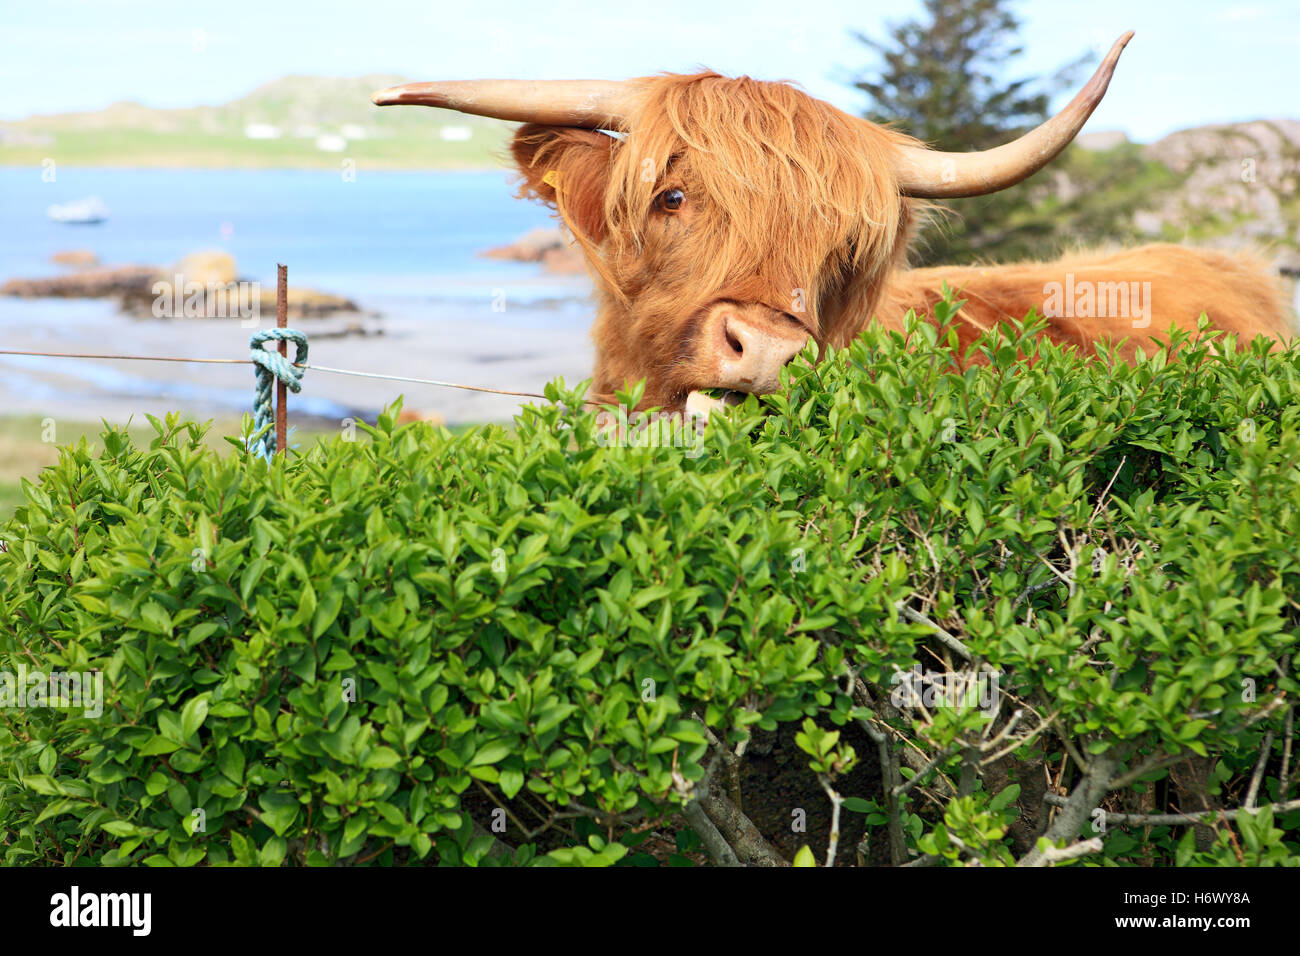 Highland cow eating a hedge as there are areas of common grazing which means the animals are not fenced in and can - Stock Image